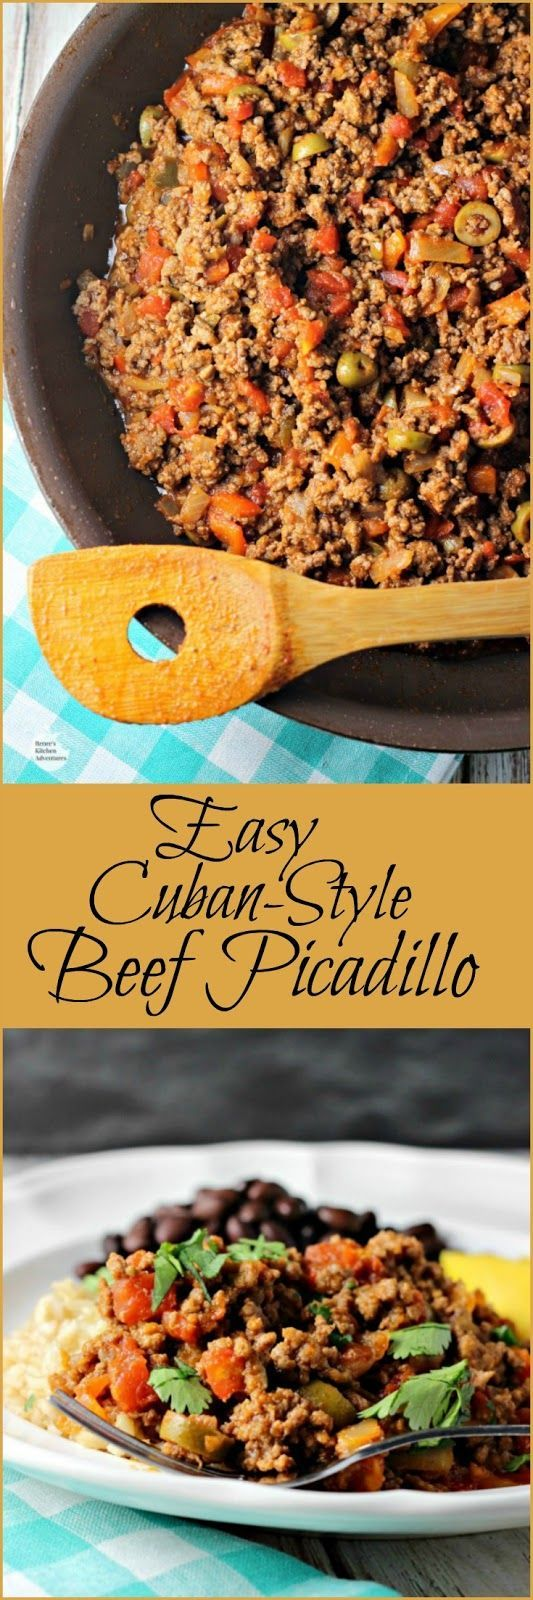 Easy Cuban-Style Beef Picadillo | by Renee's Kitchen Adventures - Easy healthy lean beef entree perfect for busy weeknights!  Full of so much flavor! @beeffordinner #SundaySupper